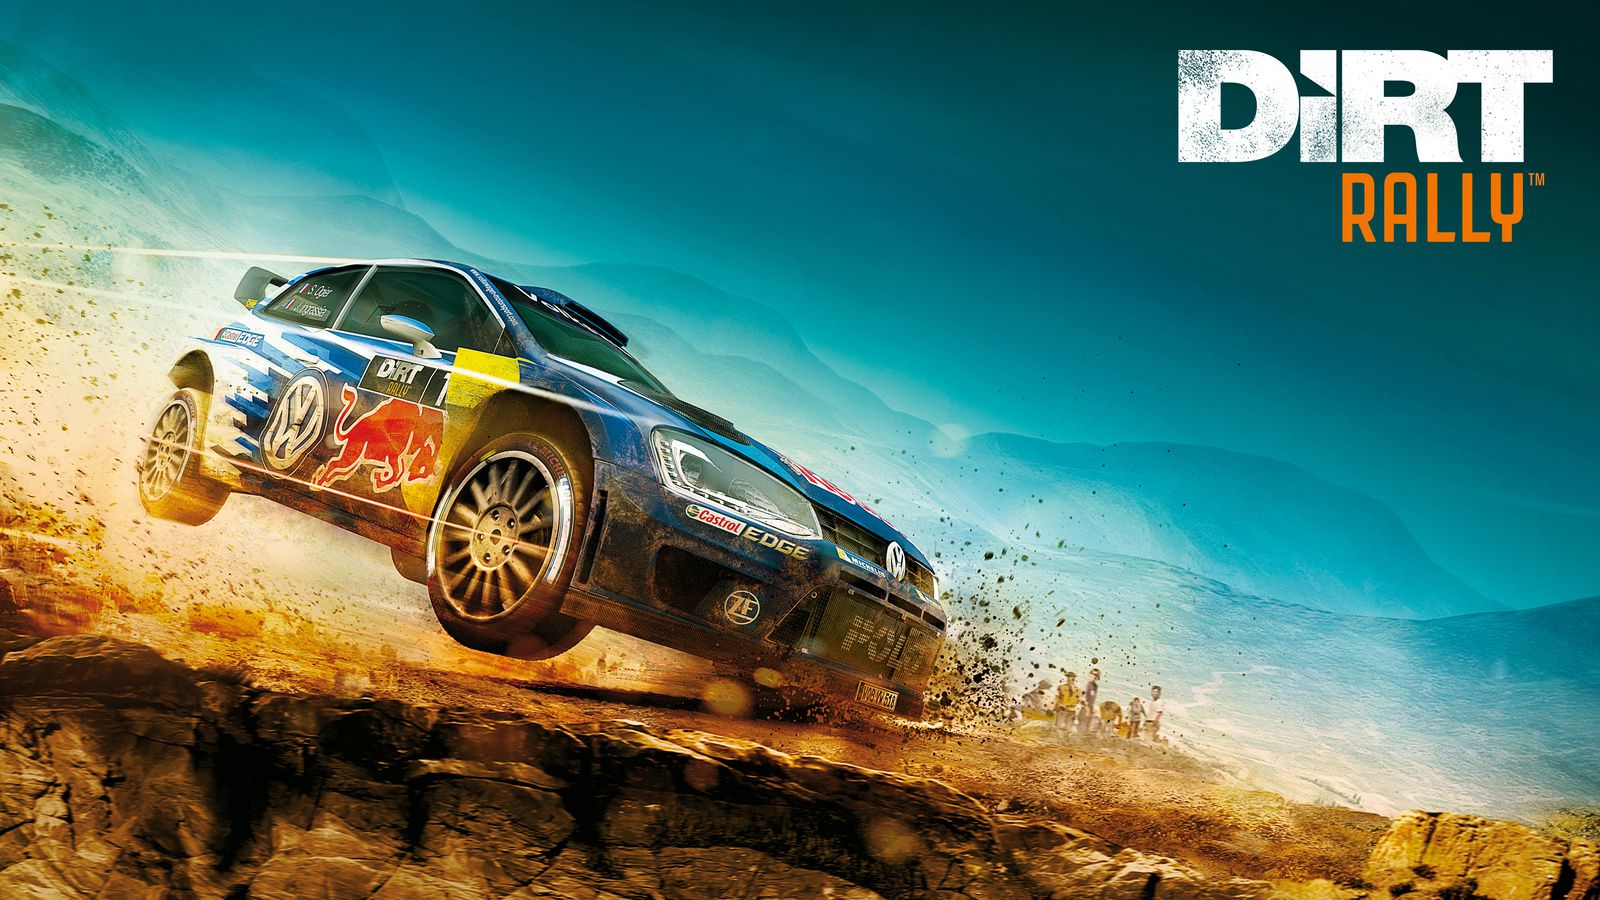 jeux video dirt rally enfin dispo sur xboxone et ps4 cotentin webradio actu jeux video. Black Bedroom Furniture Sets. Home Design Ideas